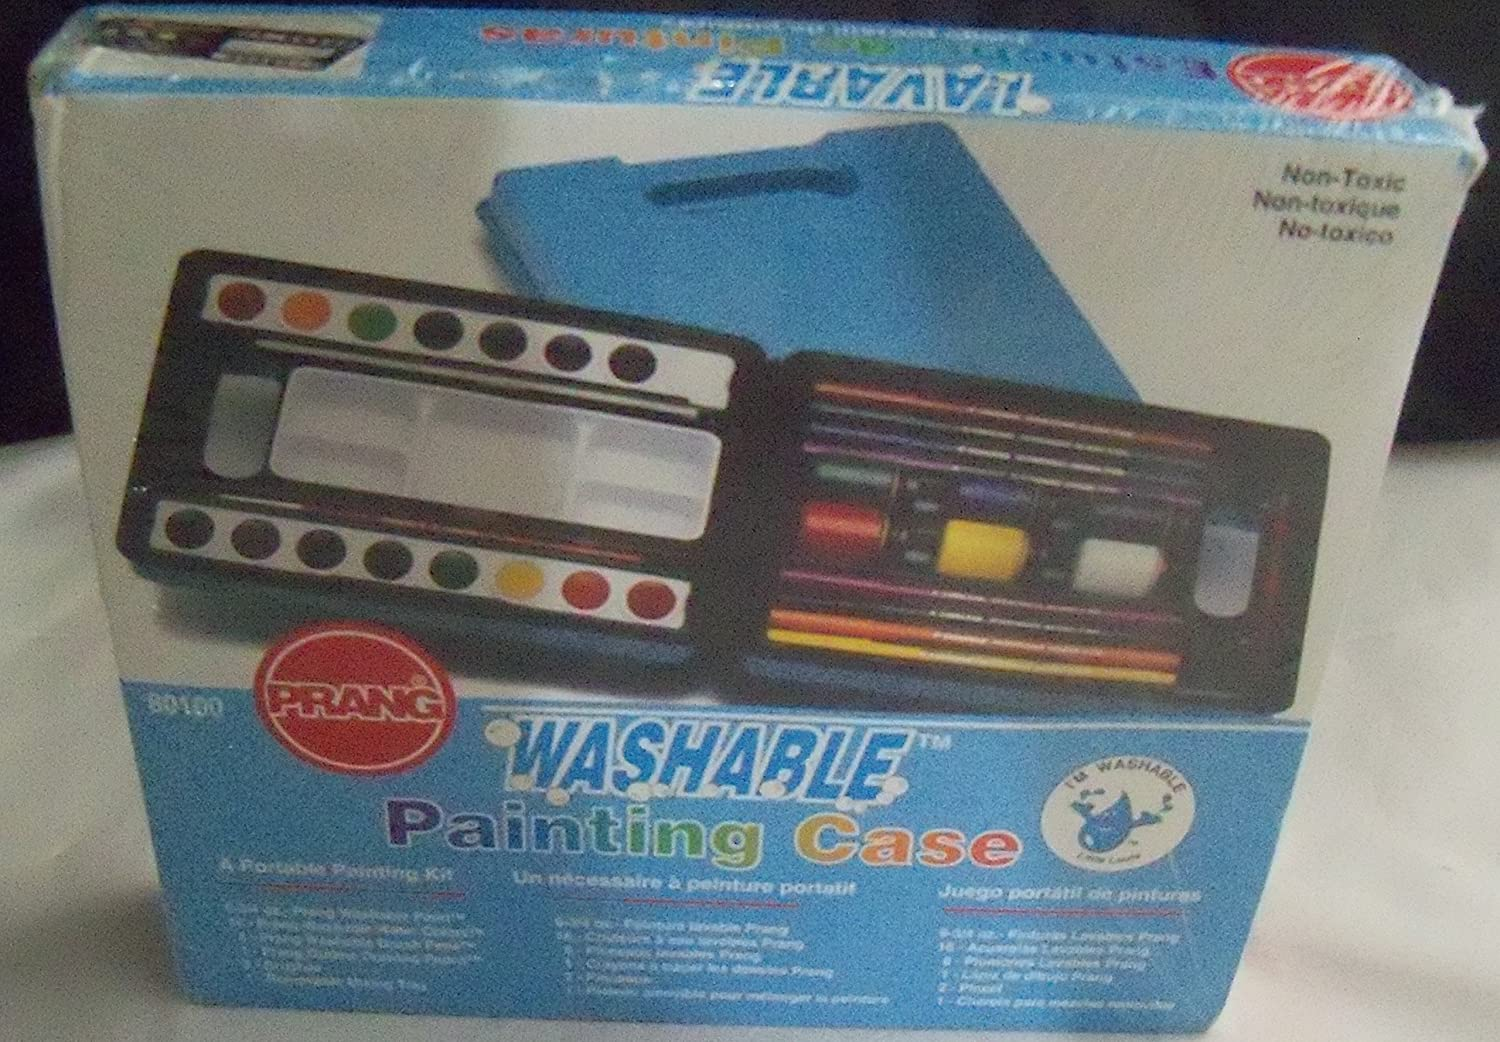 A Portable Painting Kit By Prang Washable Painting Case}